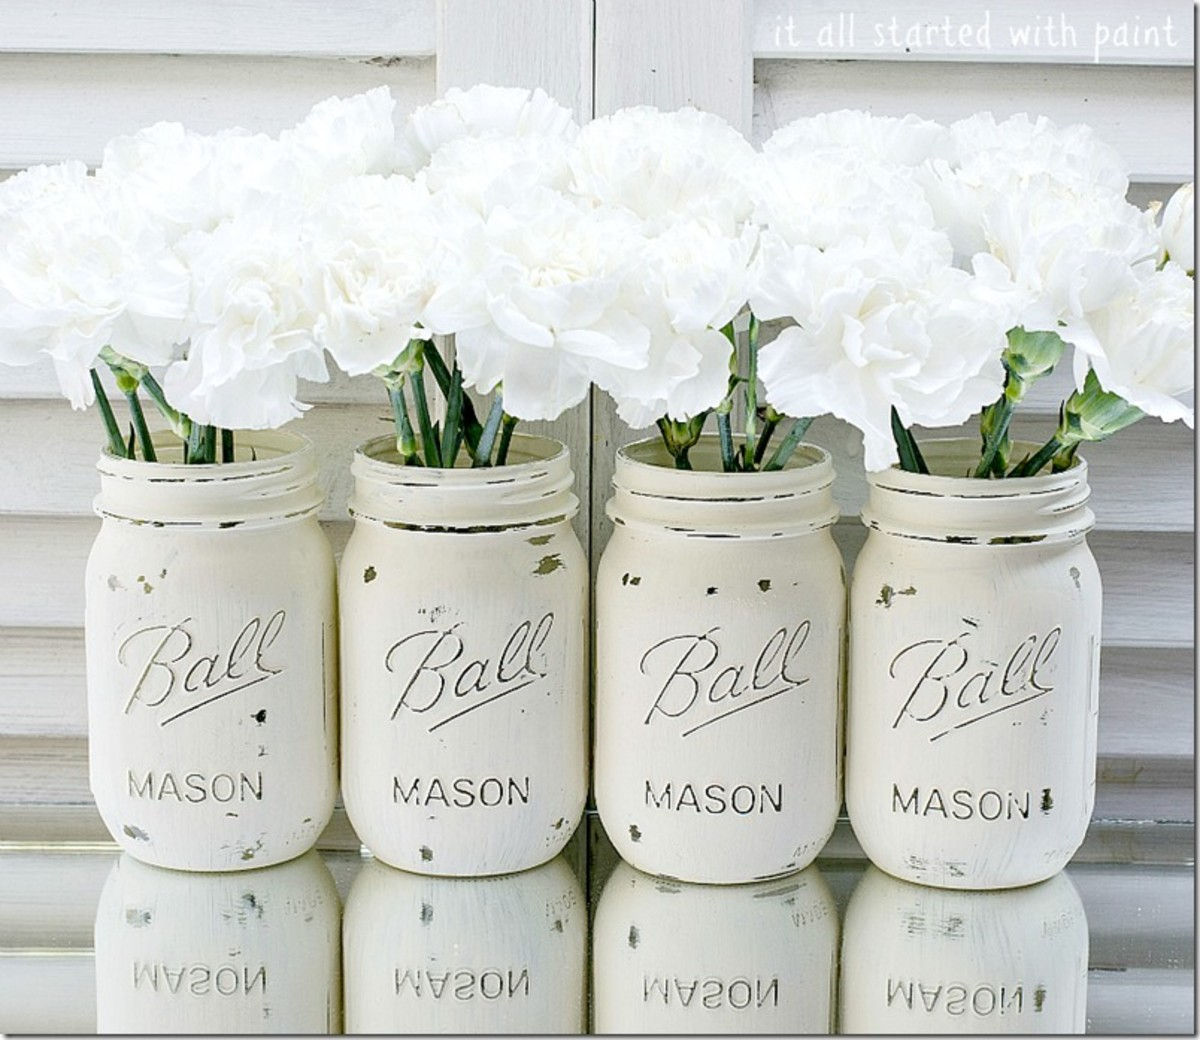 These were painted mason jars in Annie Sloan Chalk Paint in very pretty white.